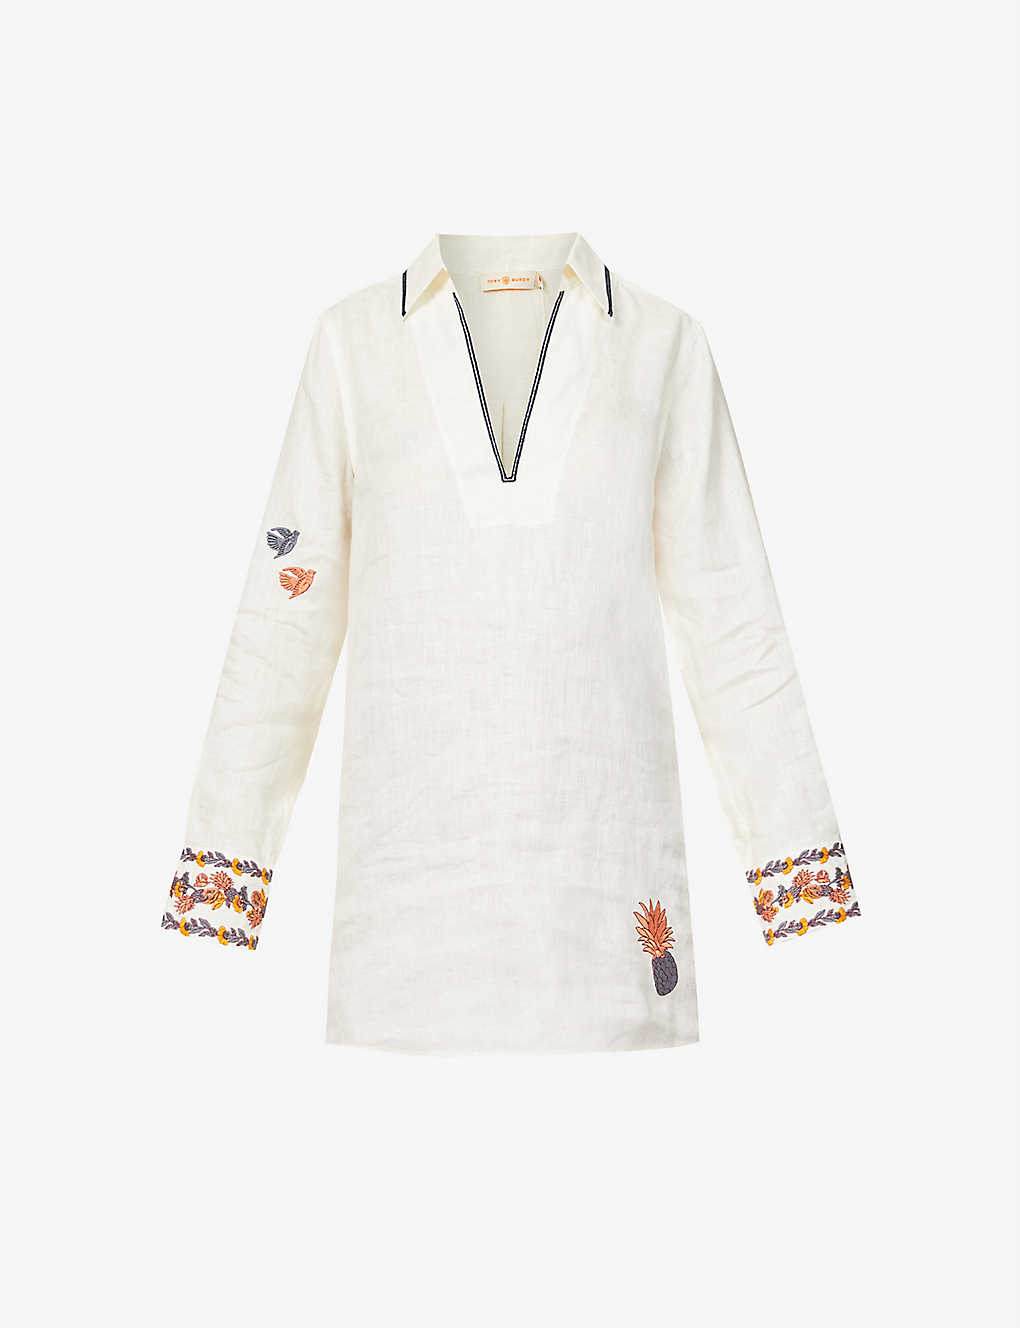 TORY BURCH: Embroidered linen beach dress